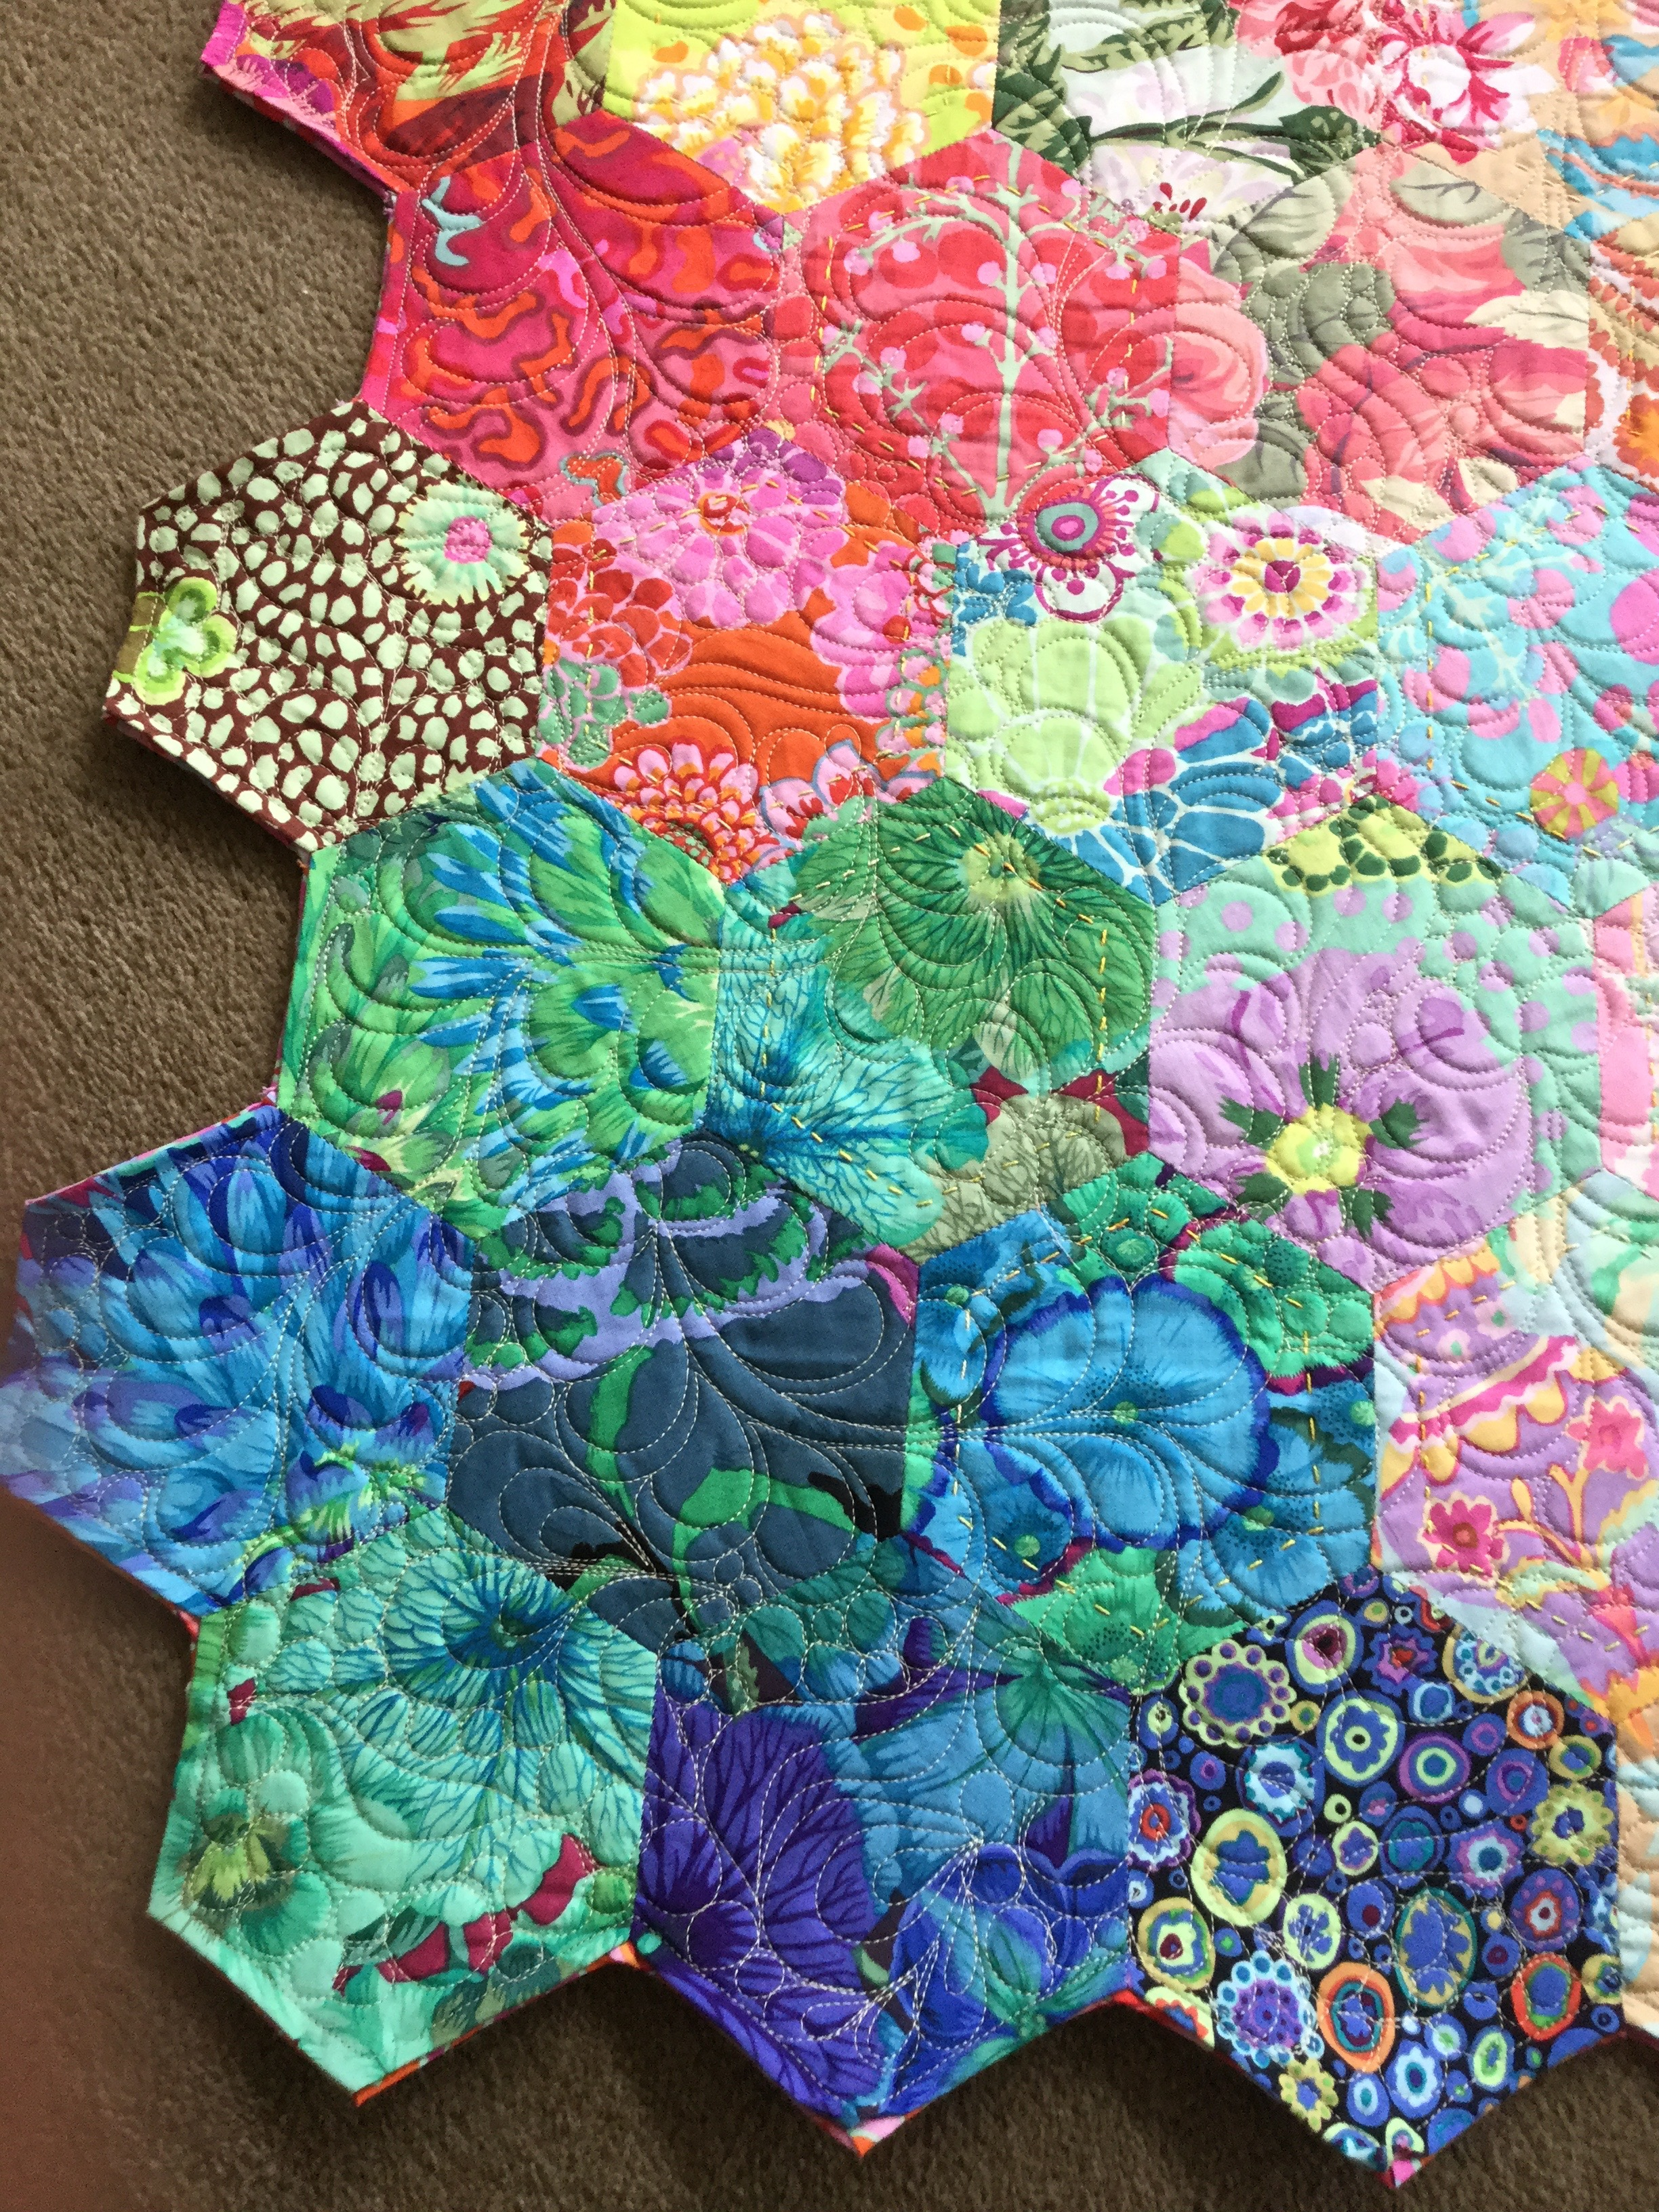 Epp Kaffe Fassett Hexagons Free Bird Quilting Designs